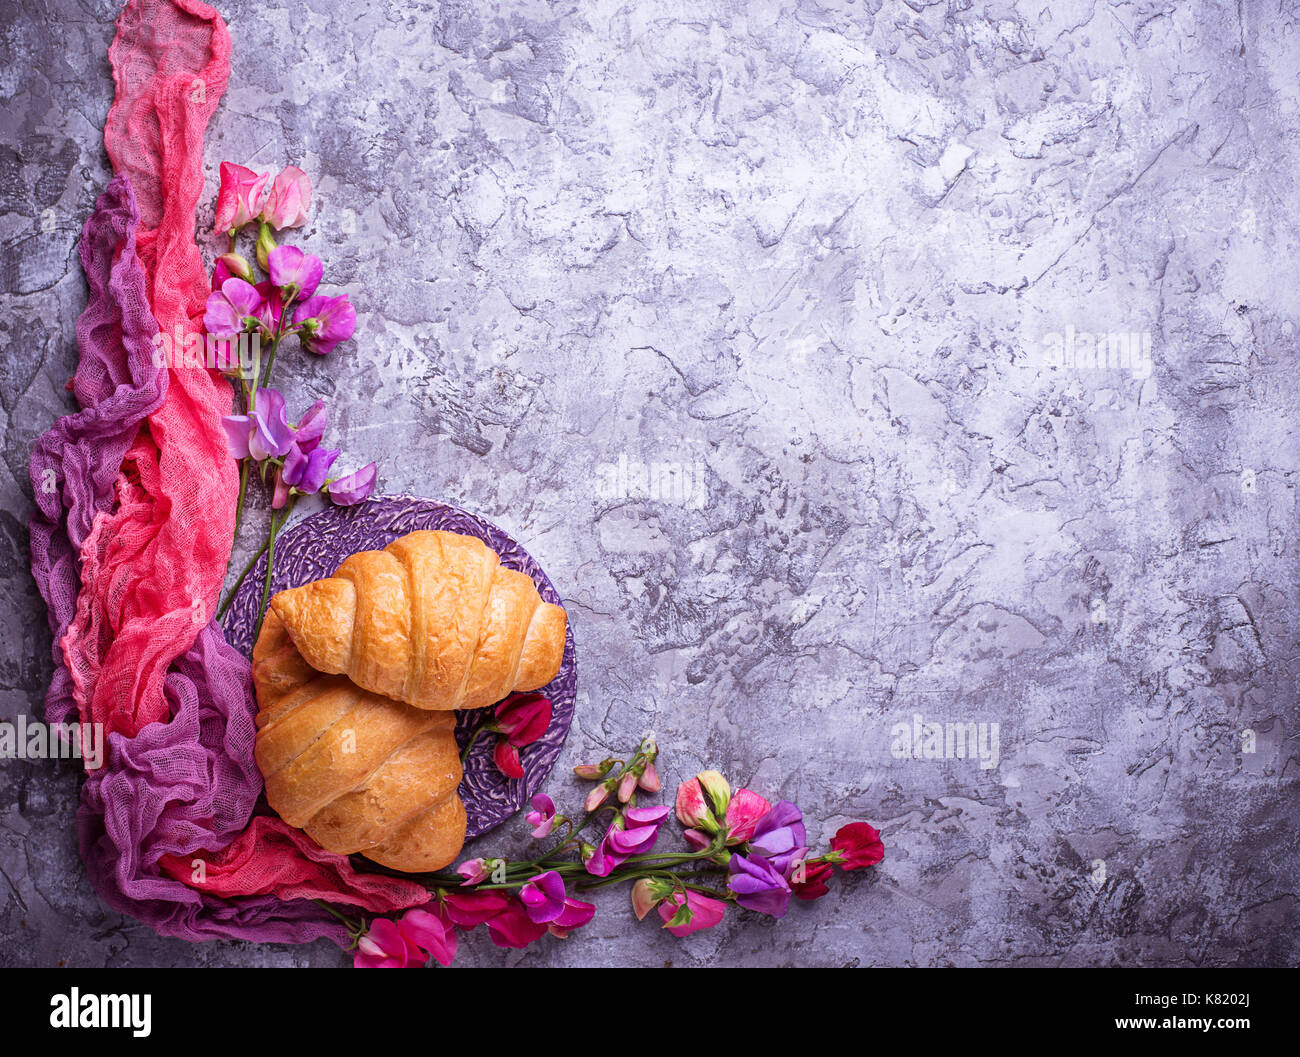 Croissants and flowers - Stock Image